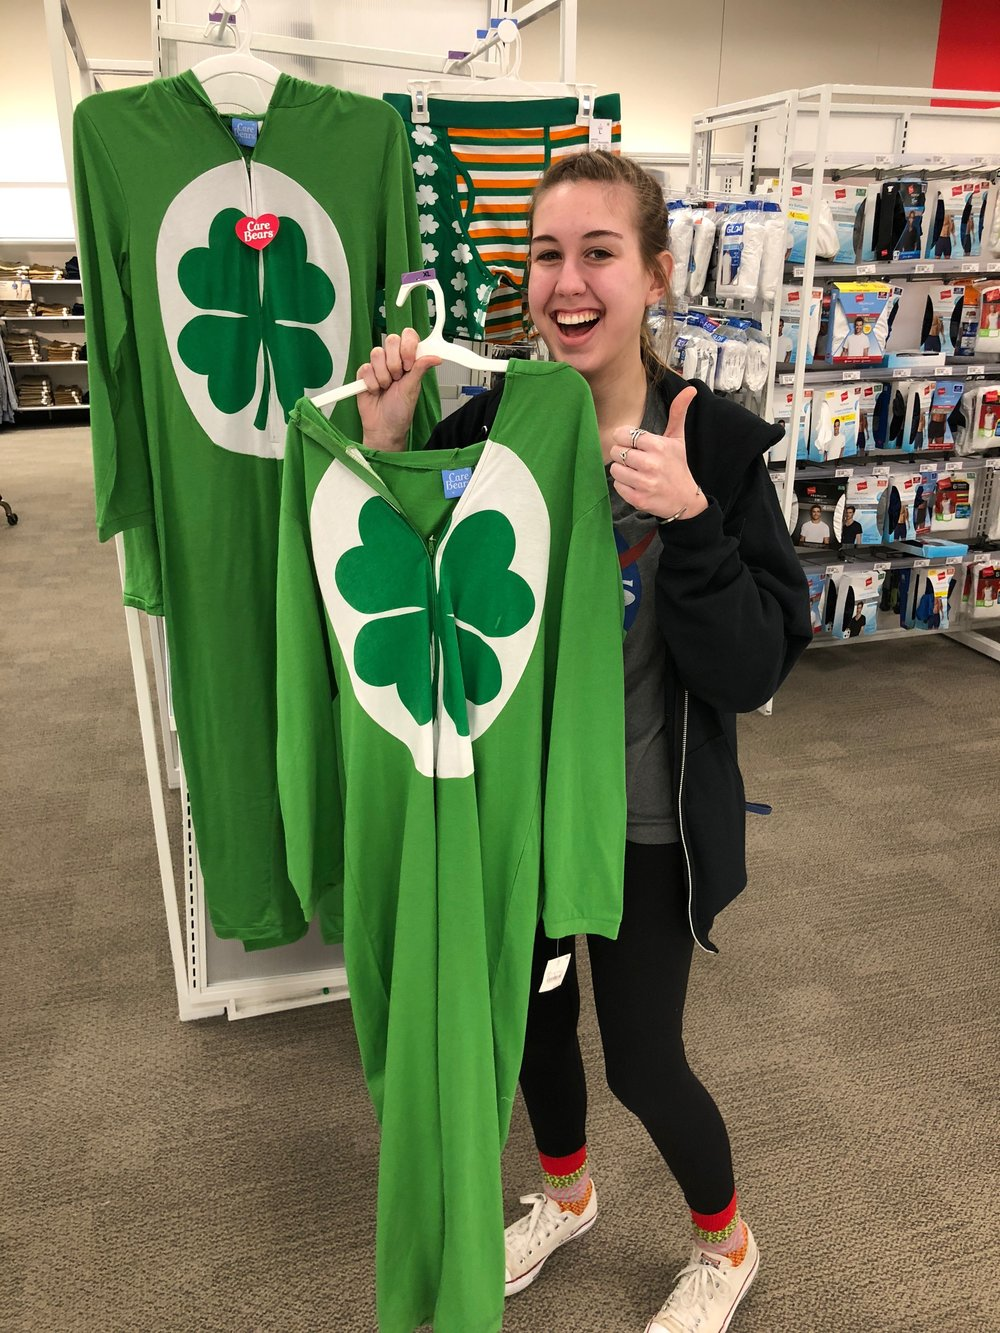 """Madison wanted this to be """"the shirt"""" but they stopped her... I think. I haven't seen the actual shirt yet."""